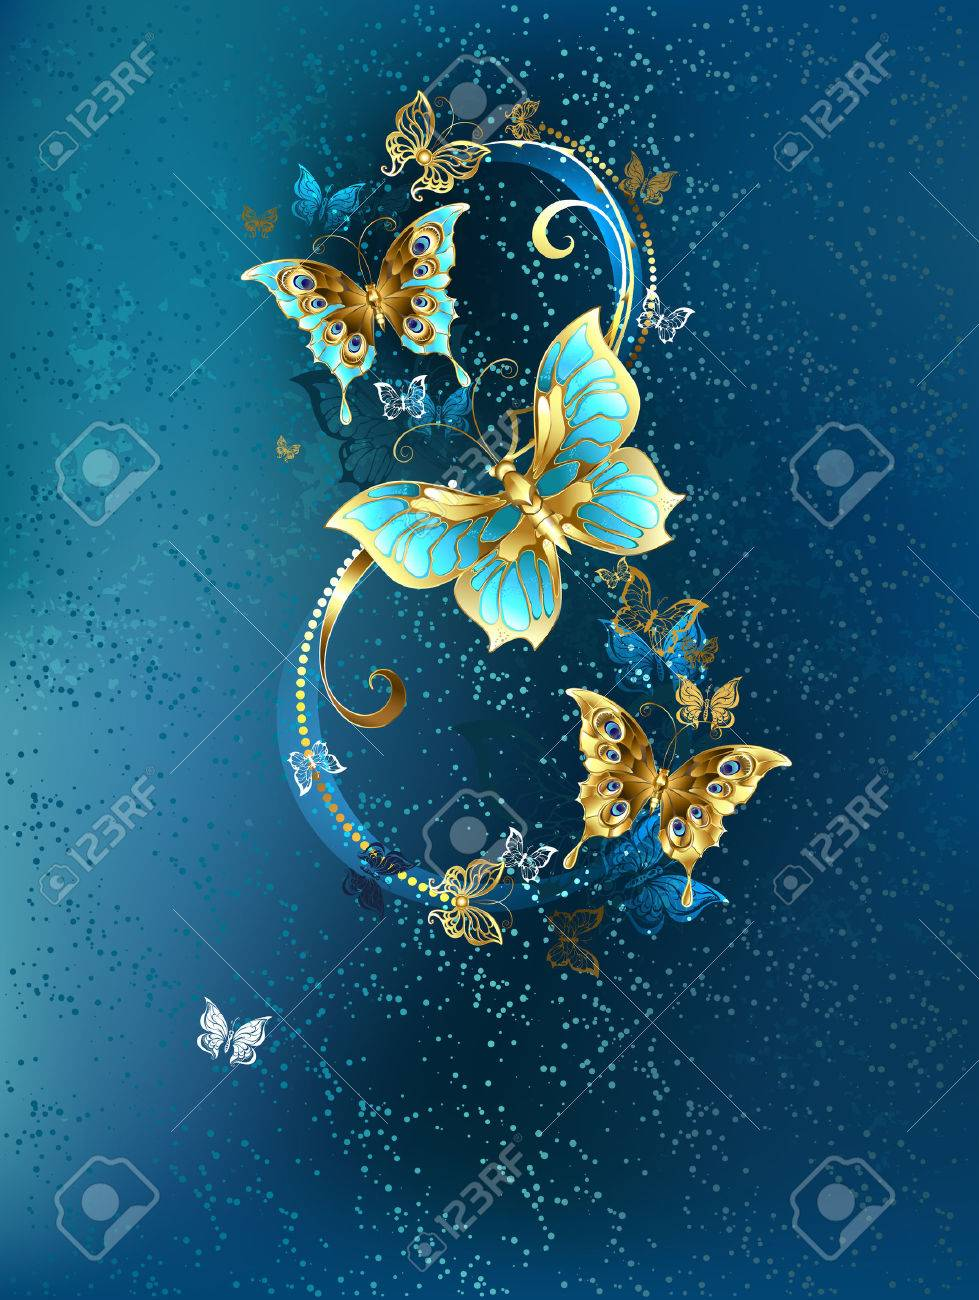 Eight of the luxury, jewelery butterflies on blue textural background. - 50644277